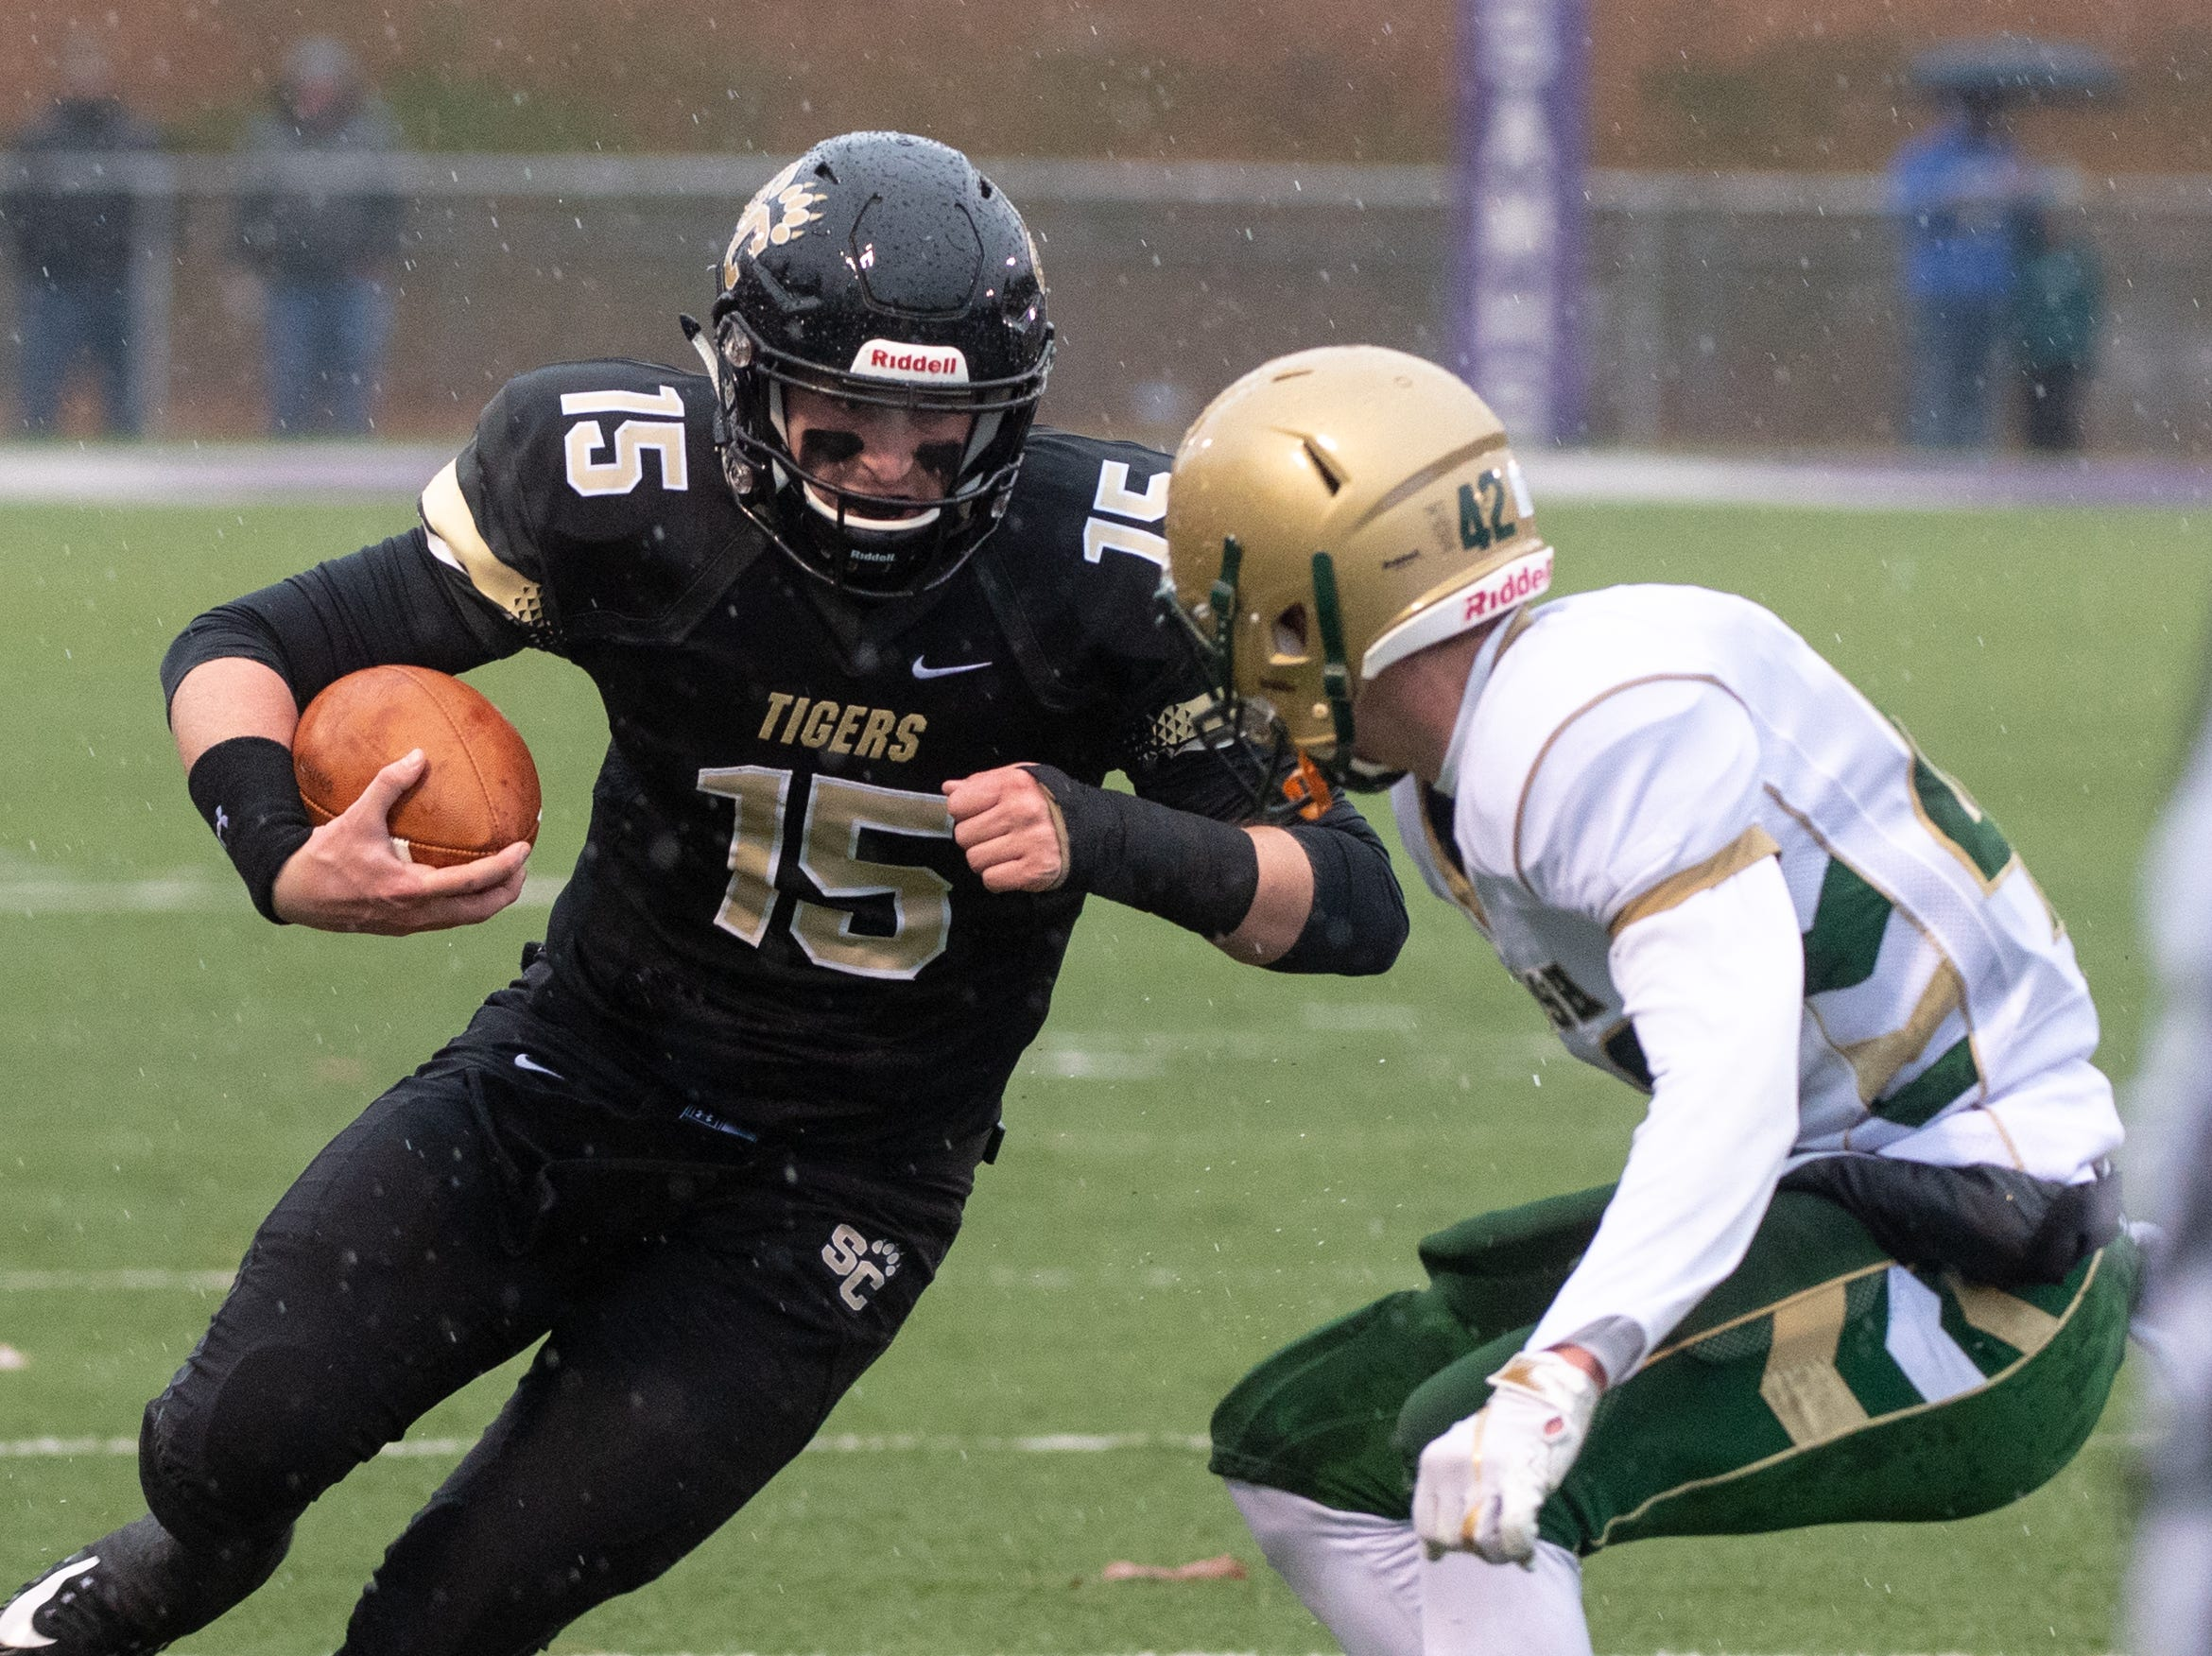 Stone Hollenbach (15) runs for the first down during the state quarter-finals game between York Catholic and Southern Columbia at Shamokin Area High School, November 24, 2018. The Tigers defeated the Irish 56-23.